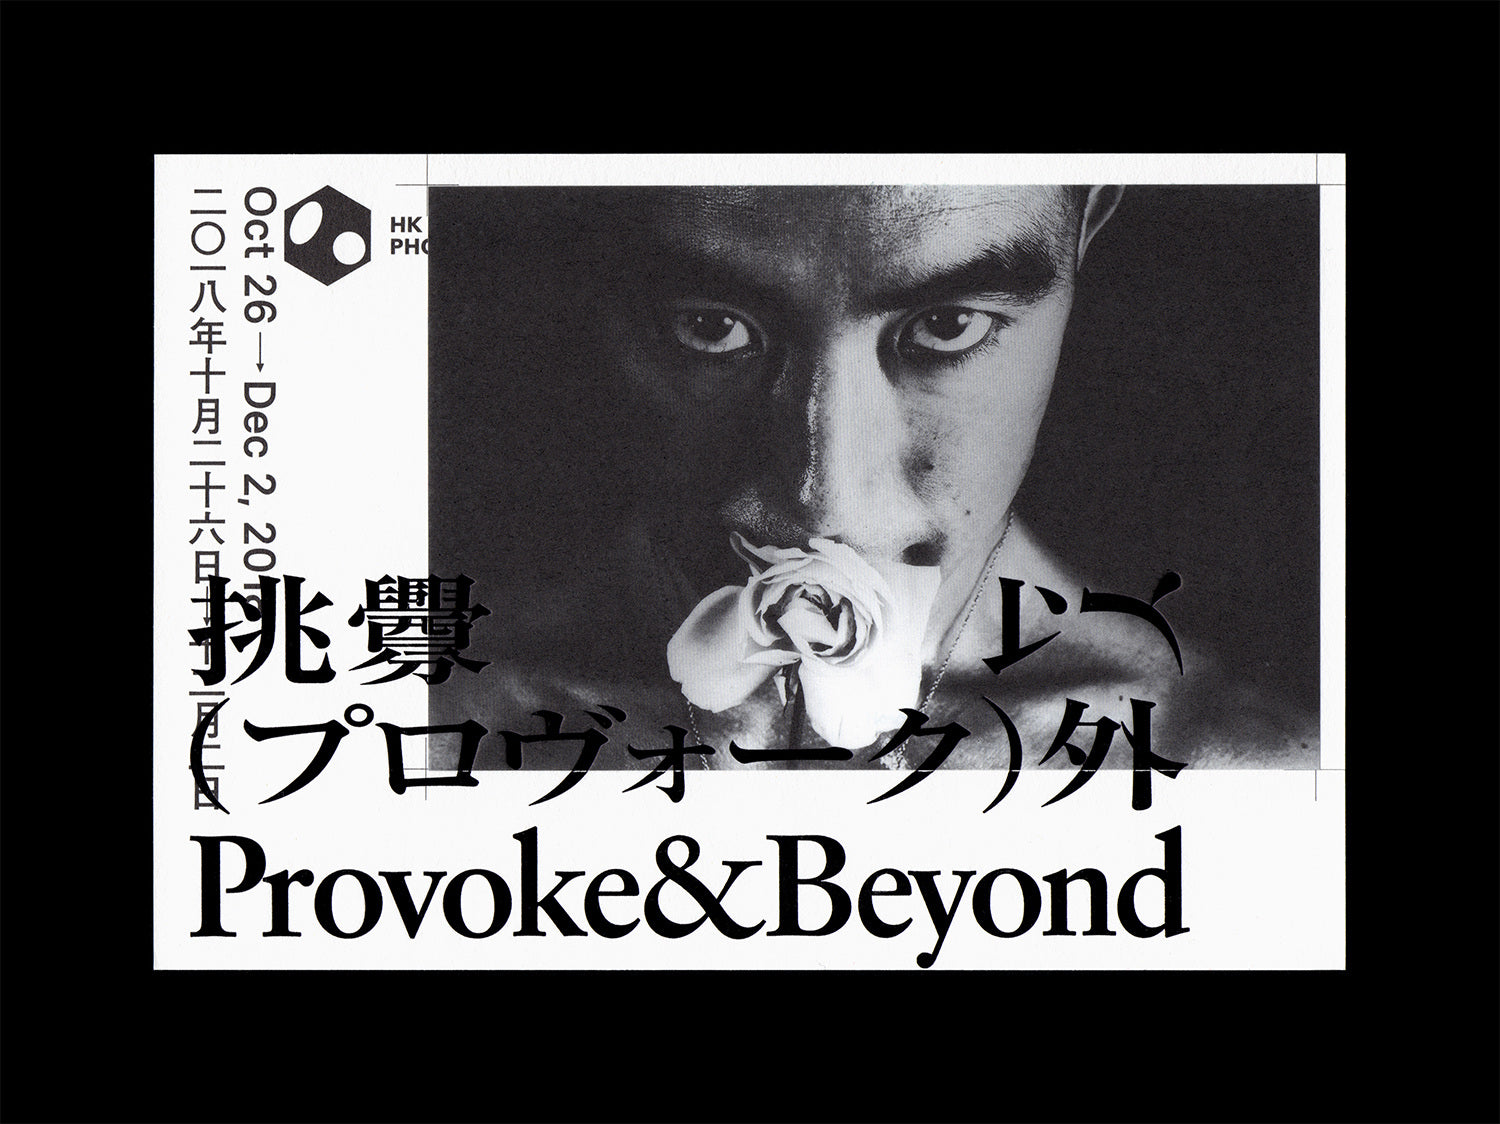 Wang Zhi-Hong: Provoke & Beyond